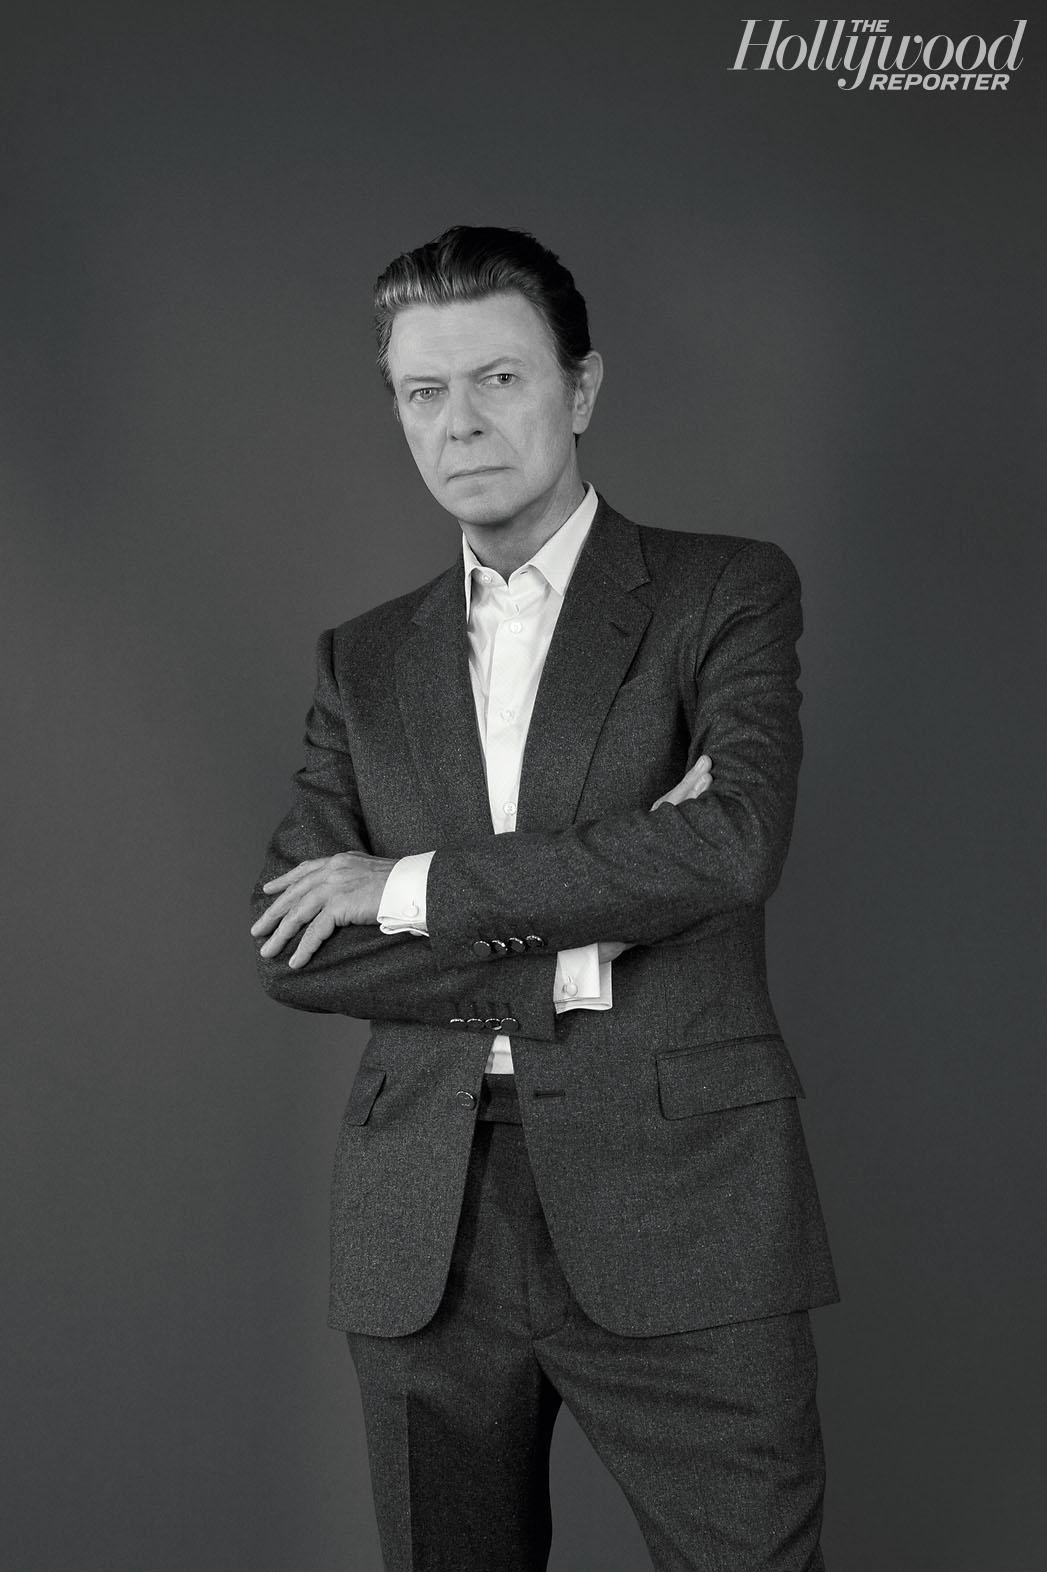 Hollywood_Reporter_Rule_Breakers_2013_Bowie_p.jpg